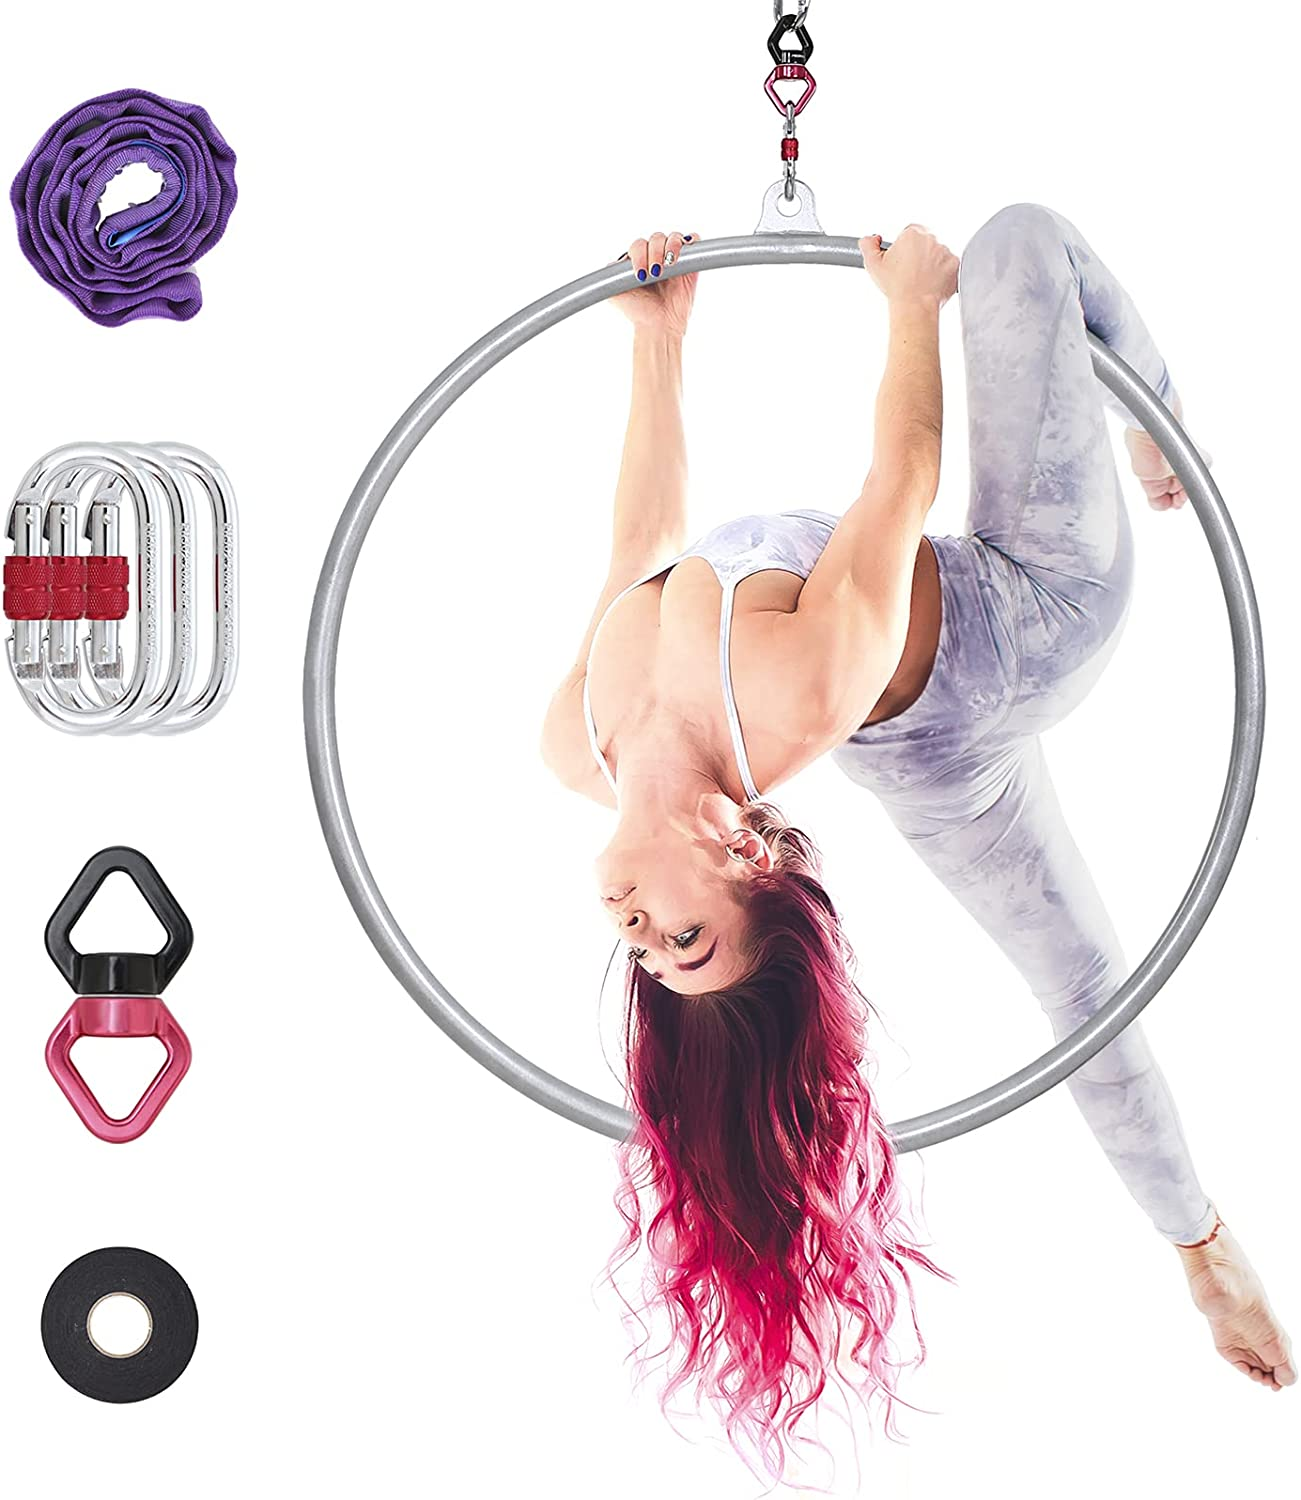 PRIORMAN Lyra Hoop - Aerial Super popular specialty store Steel Set Rigging Limited time cheap sale with